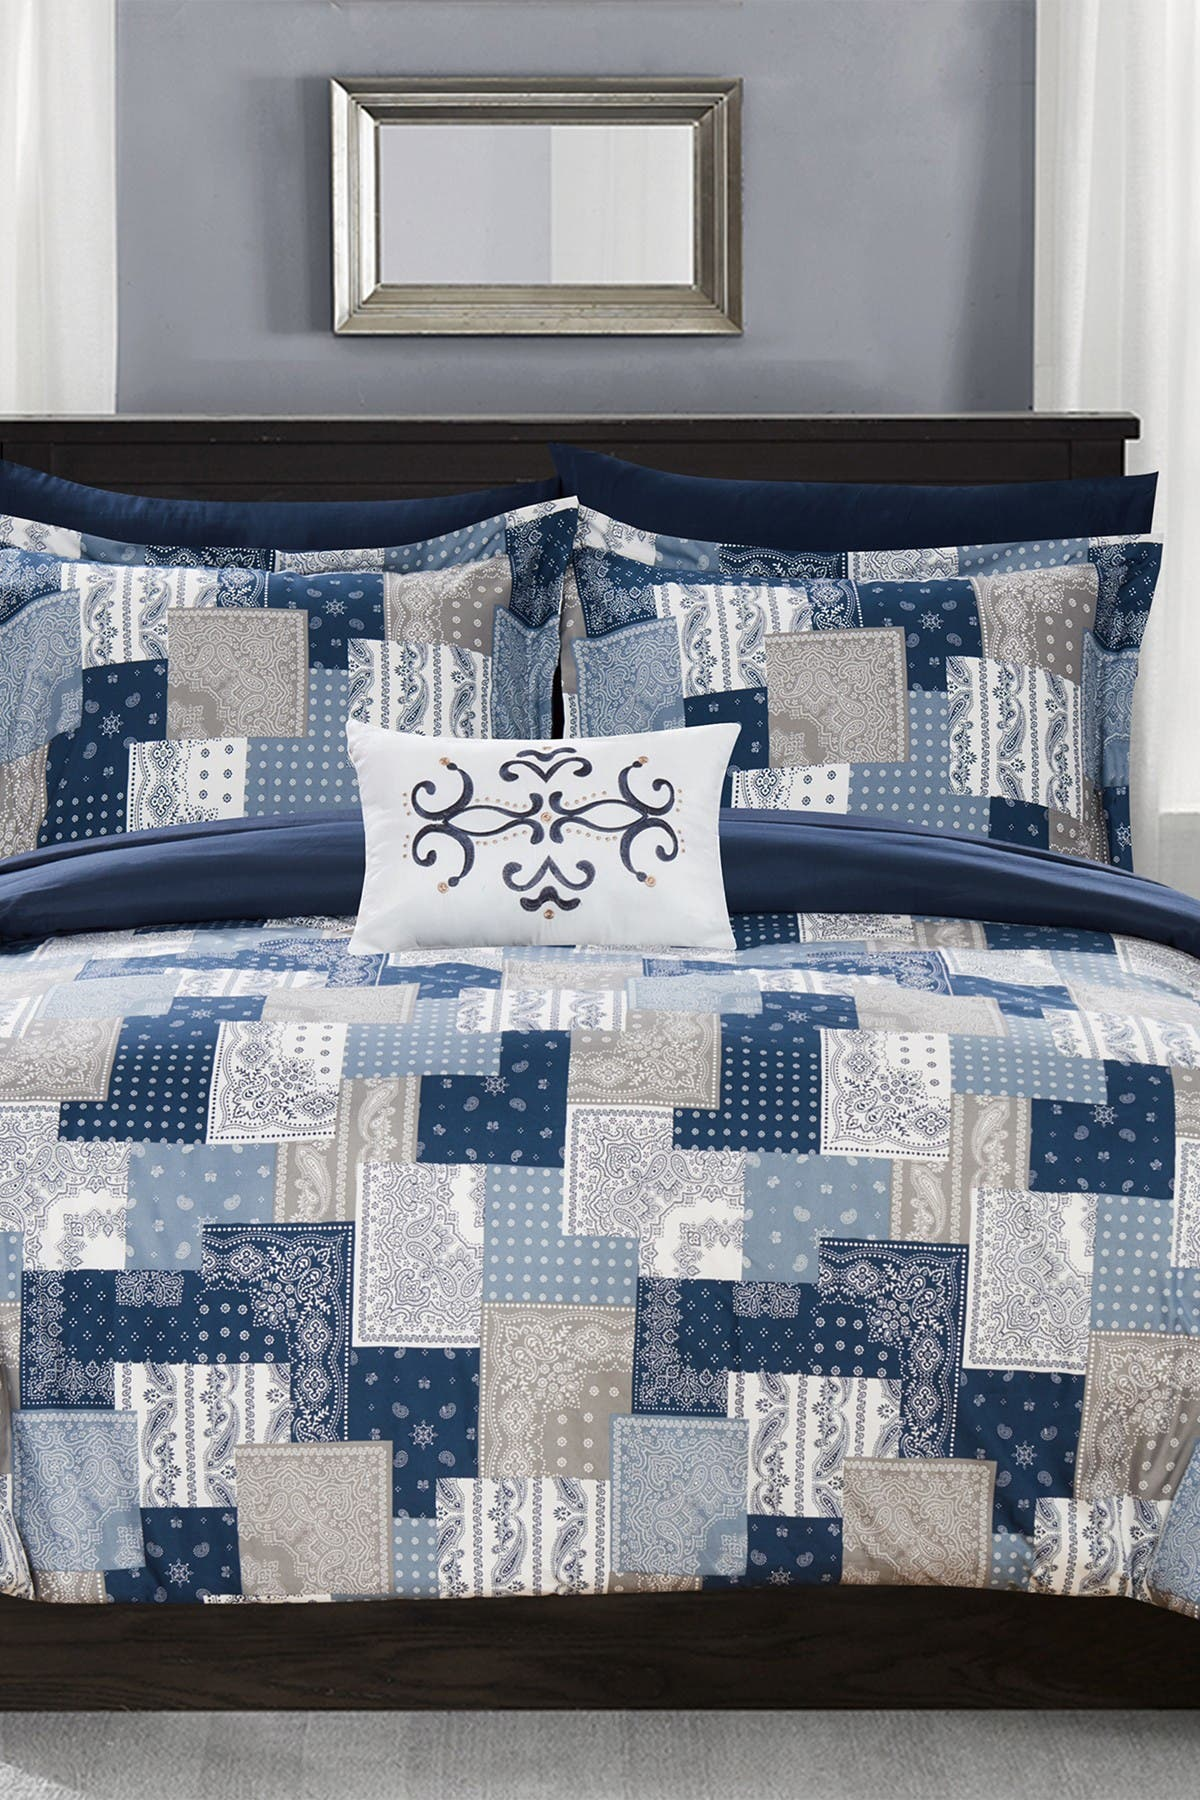 Image of Chic Home Bedding Twin Dei Reversible Bohemian Bed in a Bag Comforter Set - Blue